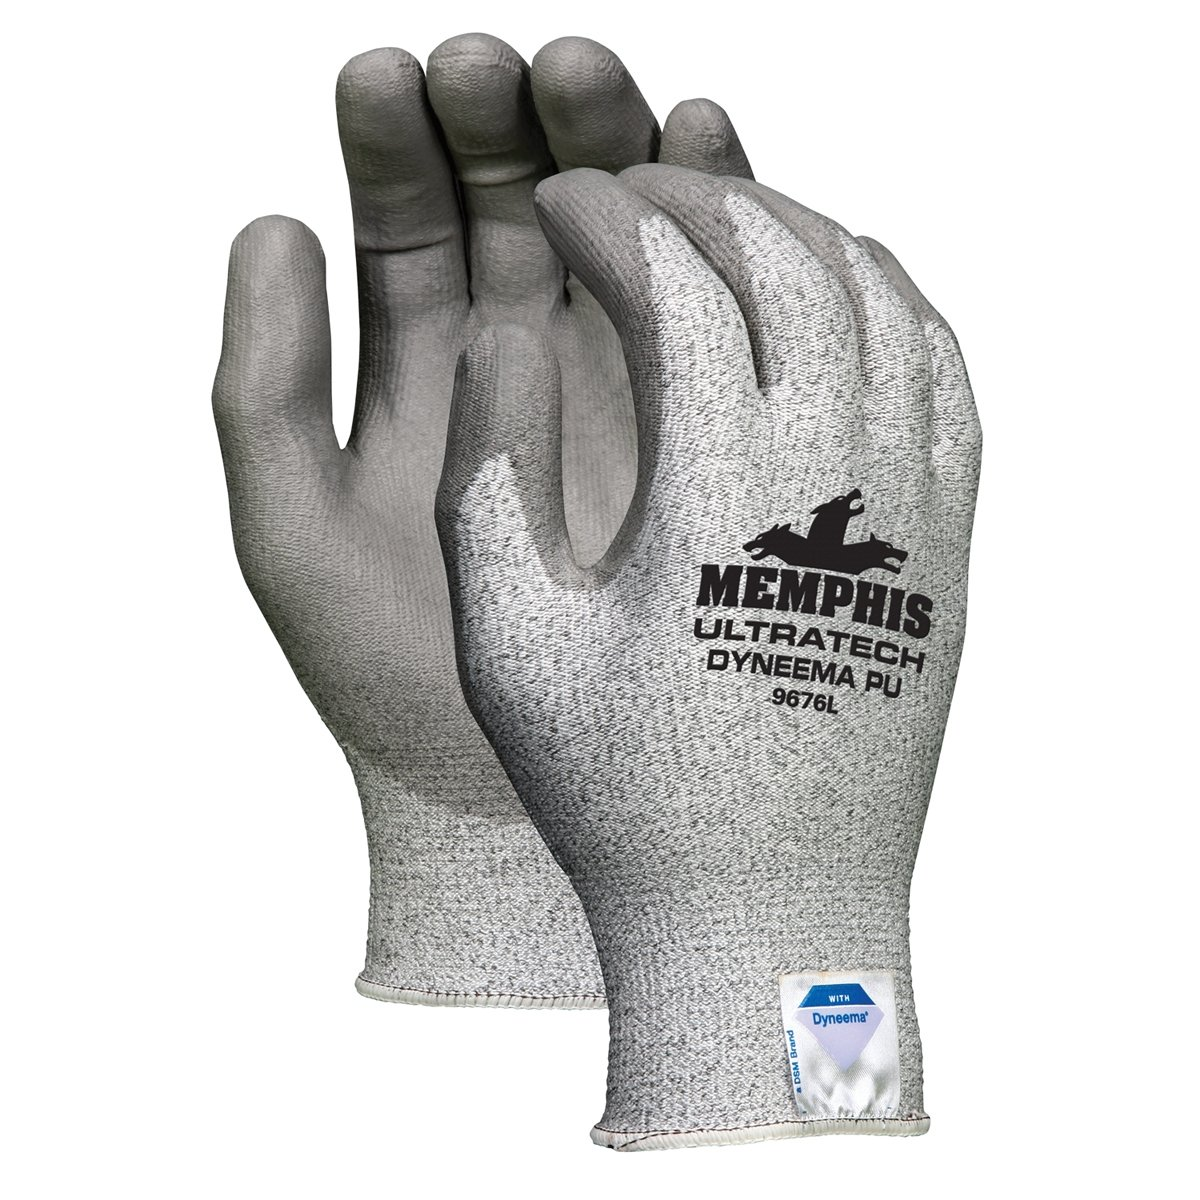 Memphis 9676L UltraTech Dyneema Cut Resistant PU Coated Gloves 12 Pair LARGE